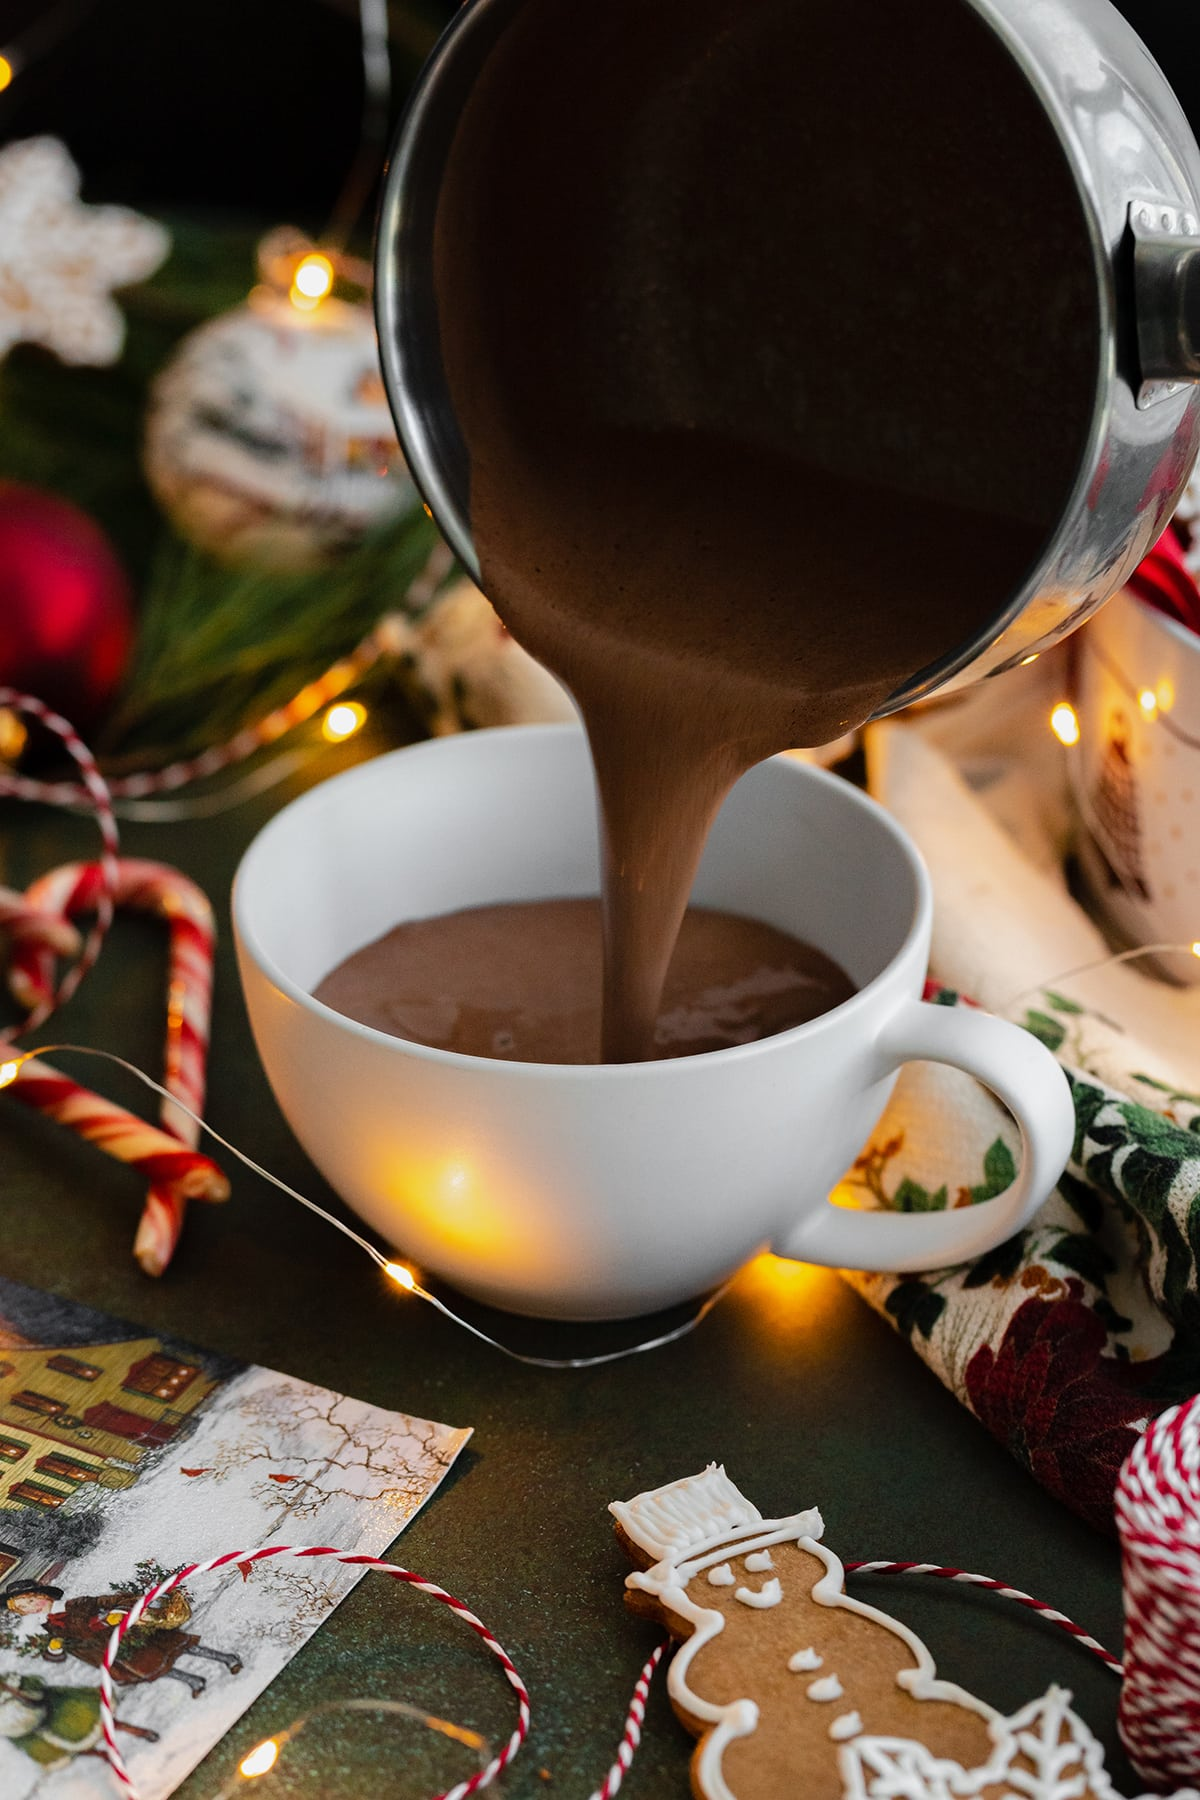 A pouring shot of hot chocolate being poured from a small pot into a white mug.